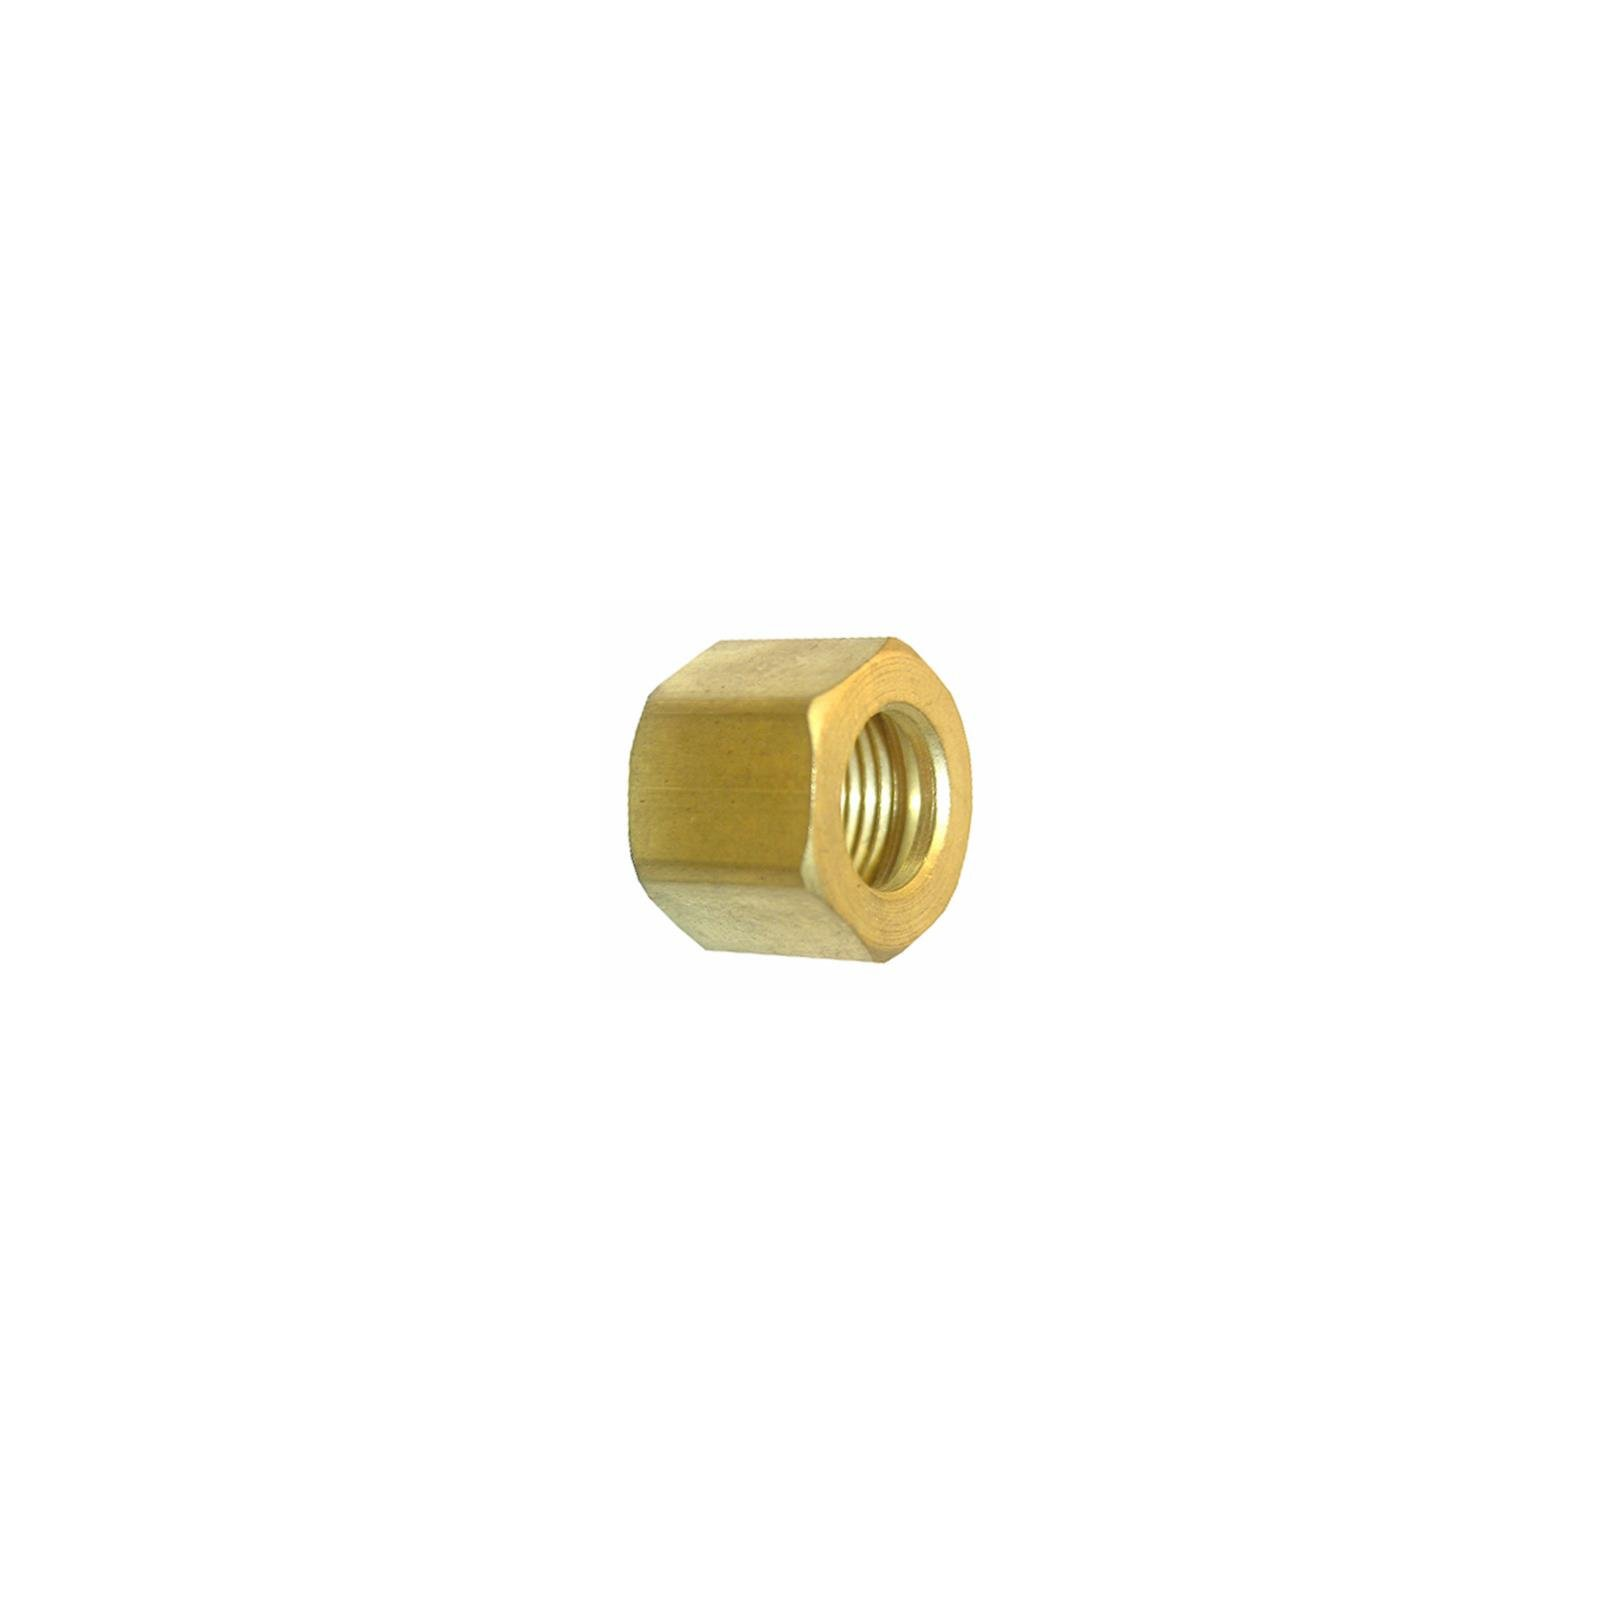 Larsen Supply 17-6111 Pipe Fitting, Compression Nut, Brass, 1/4-In, 2-Pc. - Quantity 6